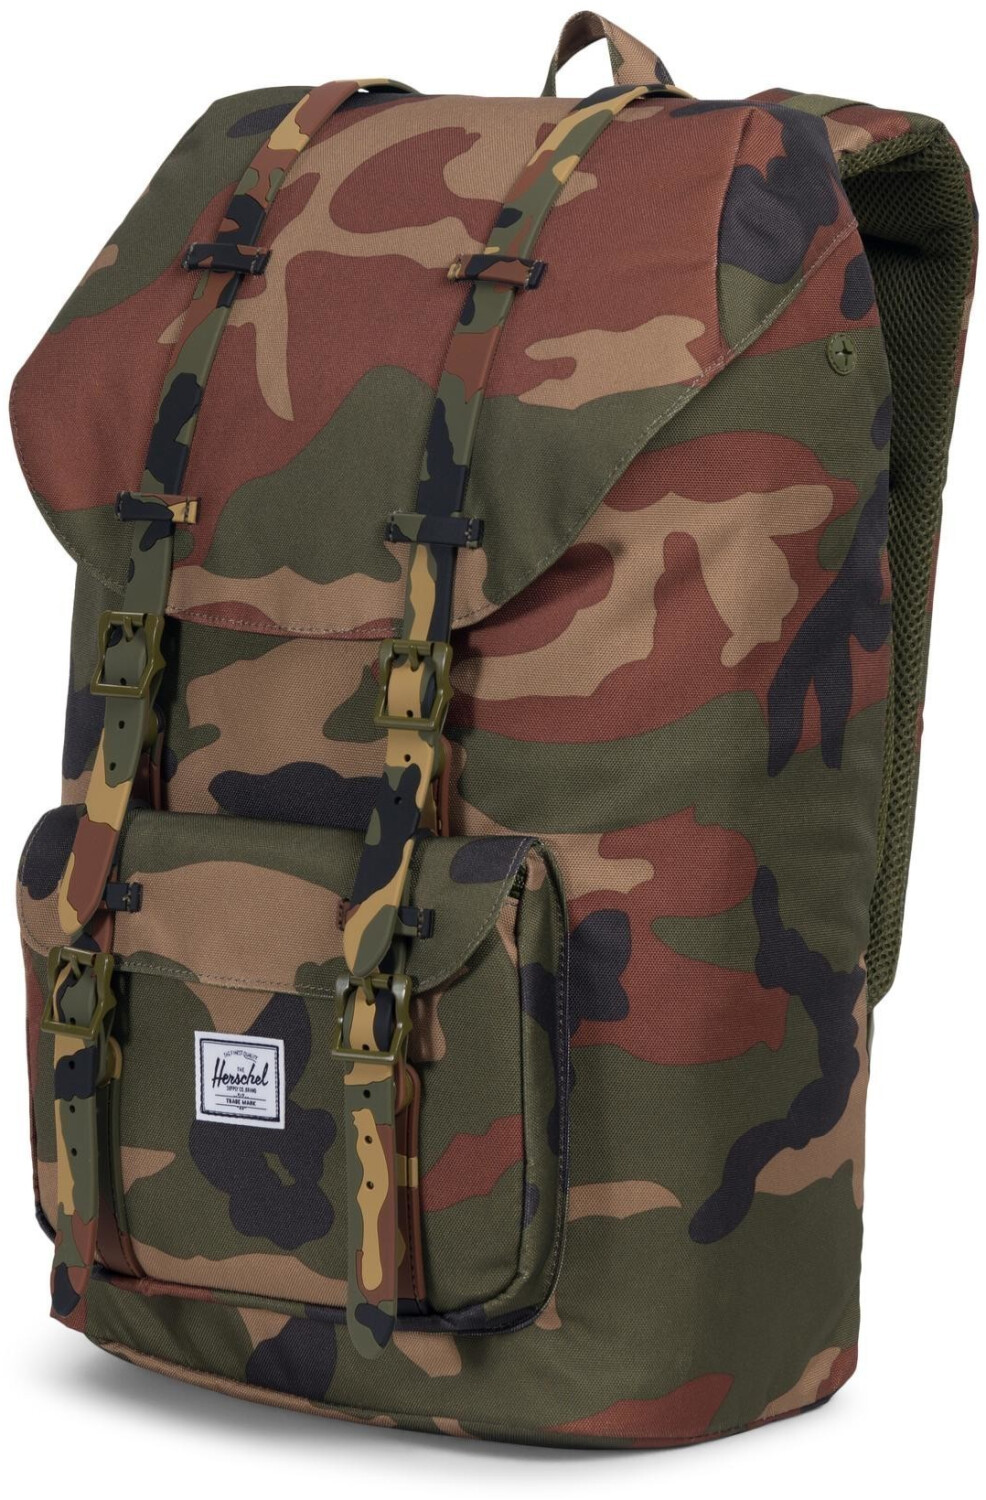 Herschel Little America Backpack woodland camo/printed rubber